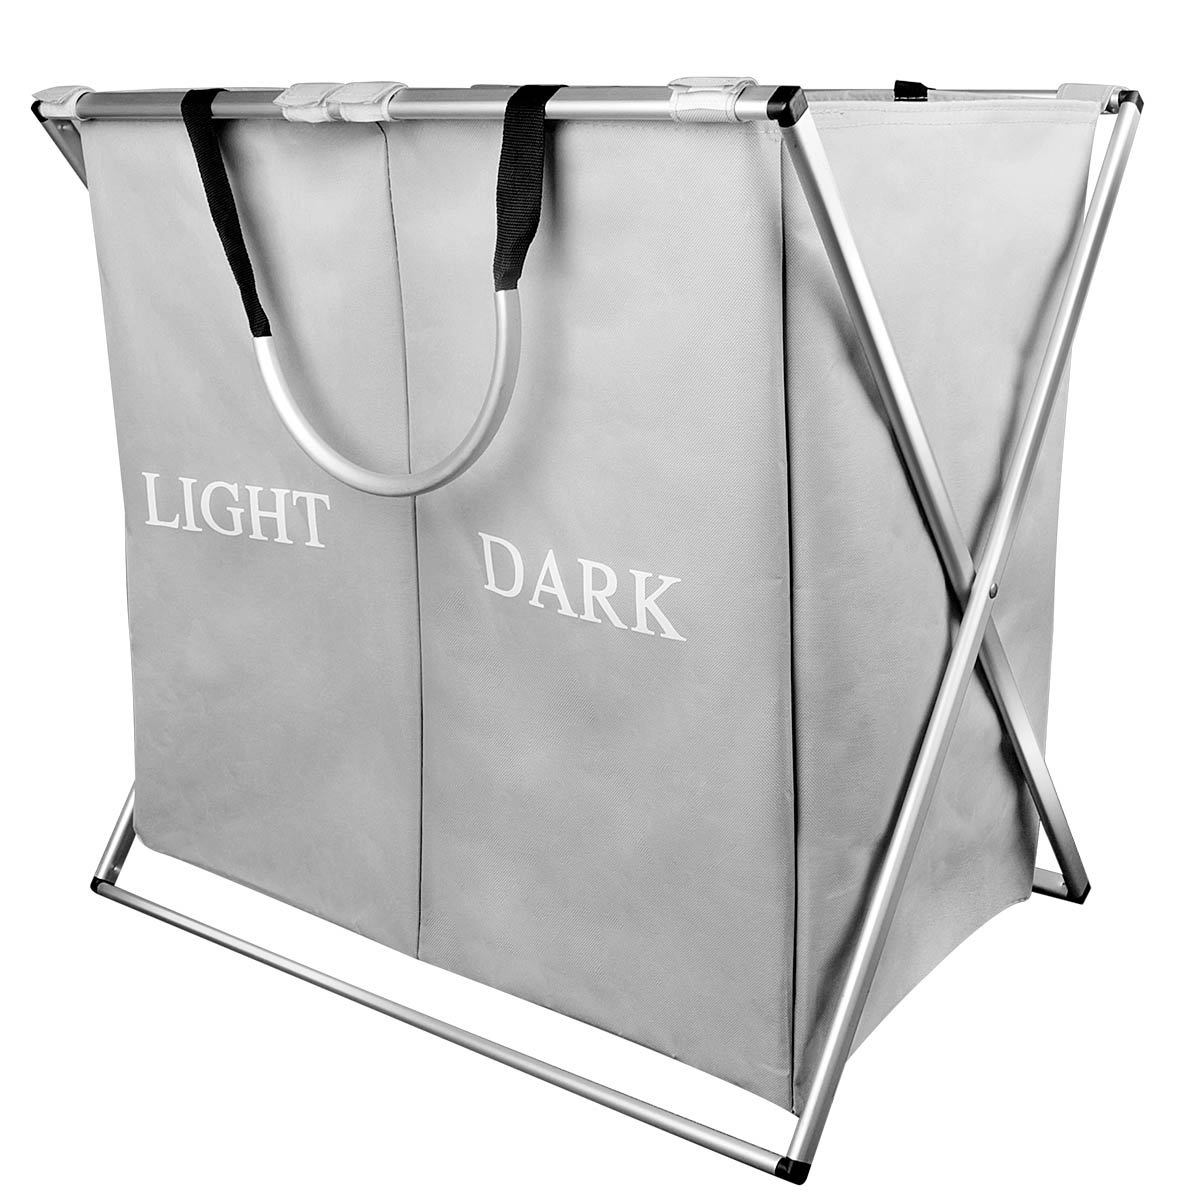 Double Light and Dark Laundry Hamper with Aluminum Frame, 2 Sections Laundry basket, 600D Oxford, 23.2''x 15''x 22.4'' Inches (light gray-2)